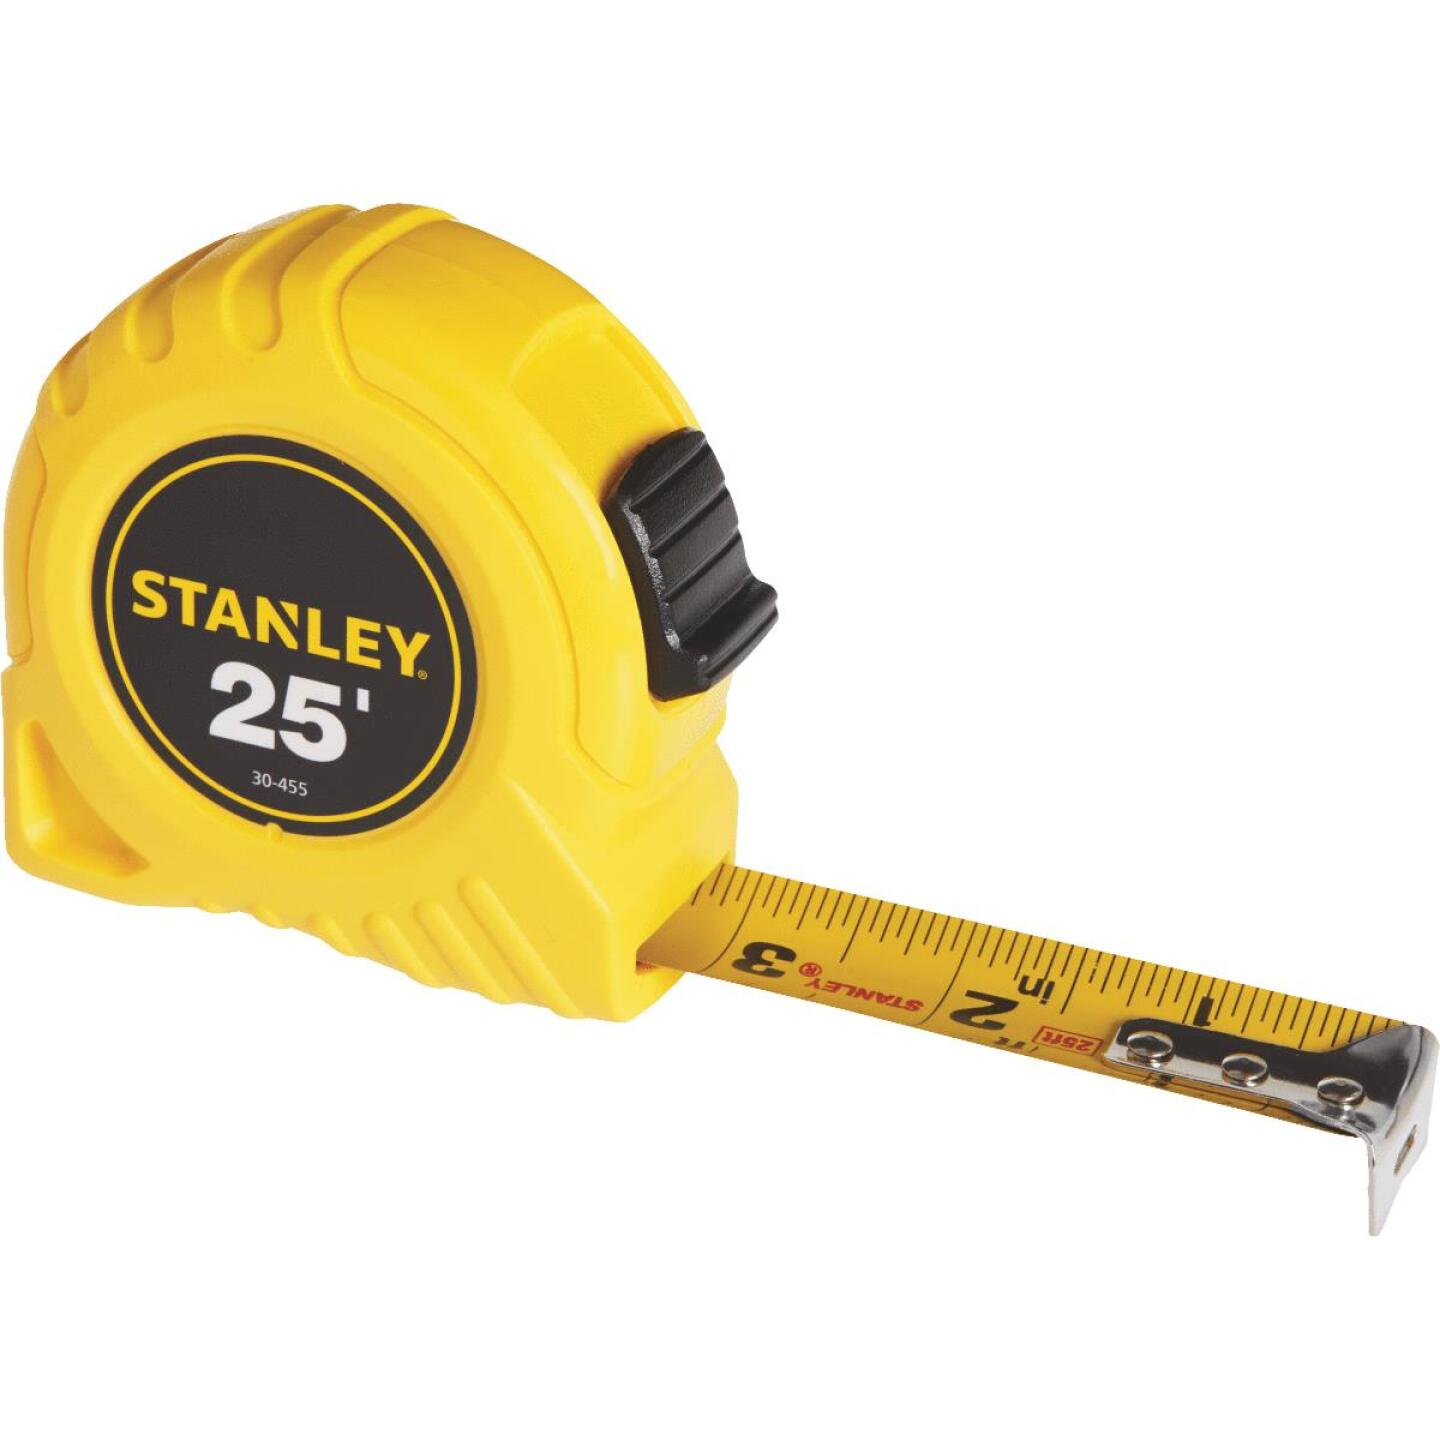 Stanley 25 Ft. Tape Measure Image 5